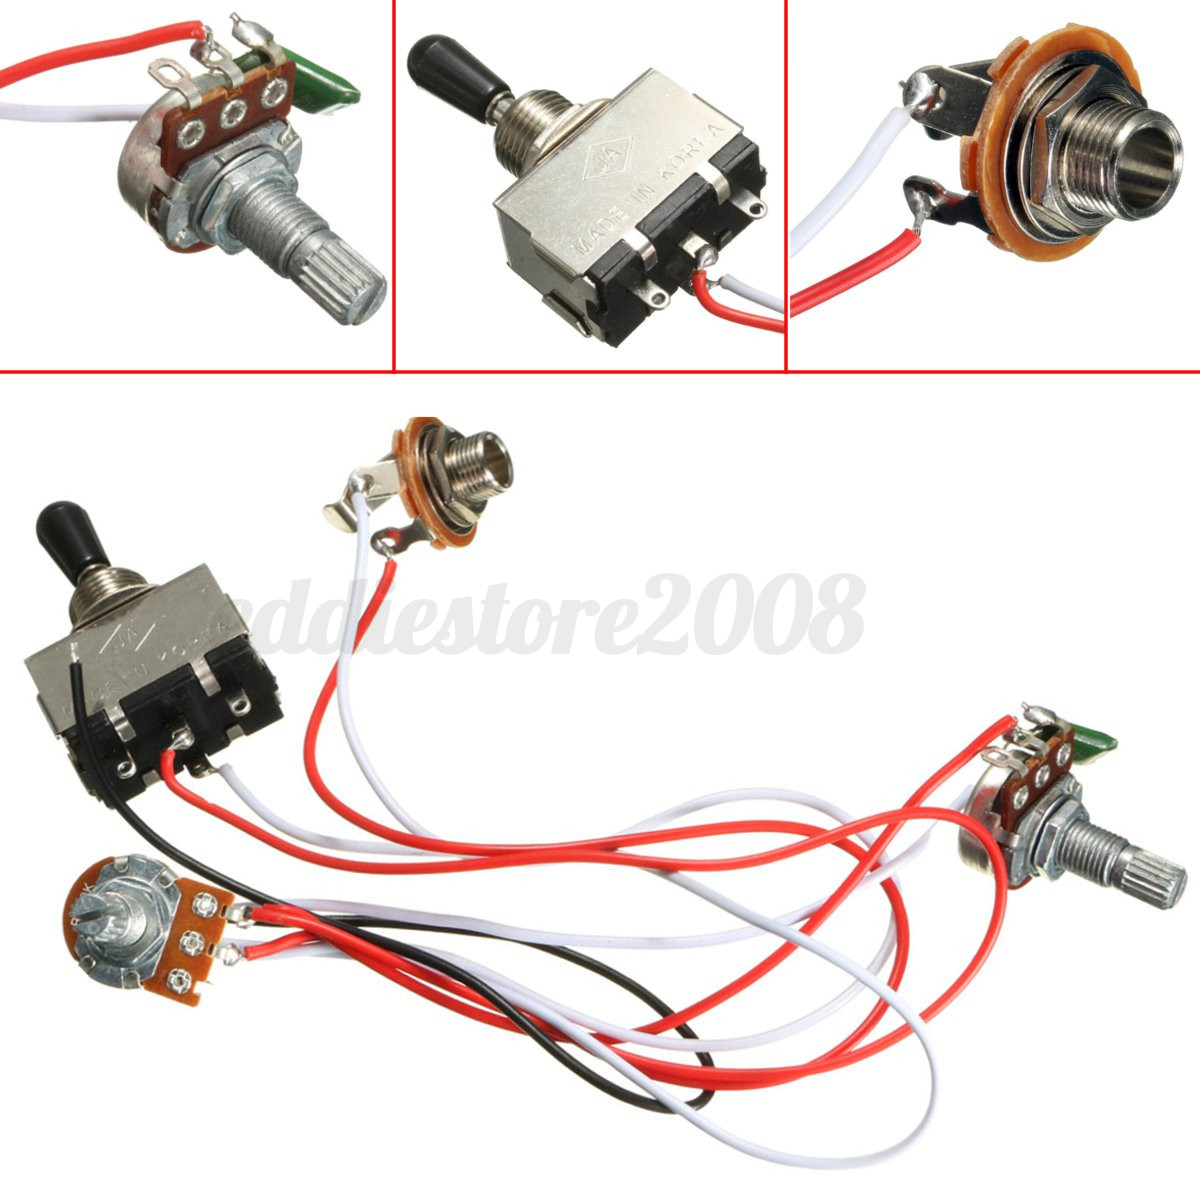 hight resolution of electric guitar 3 way toggle switch wiring harness kit 1 volume 1electric guitar 3 way toggle